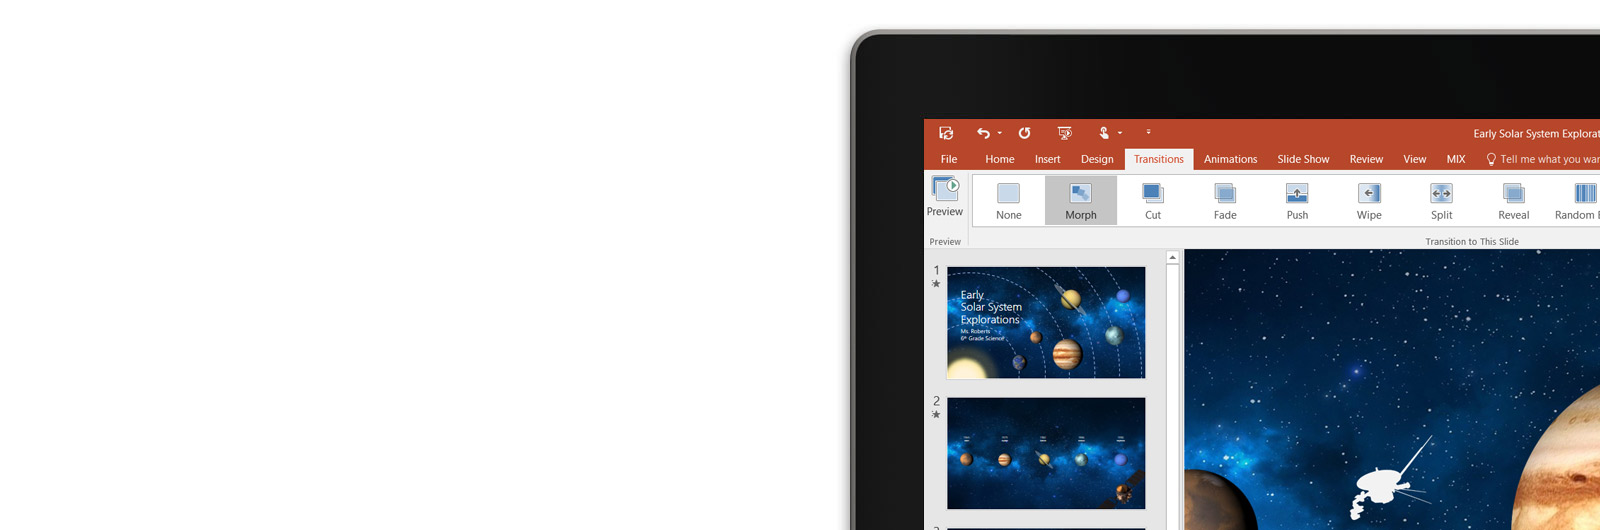 how to download morph powerpoint